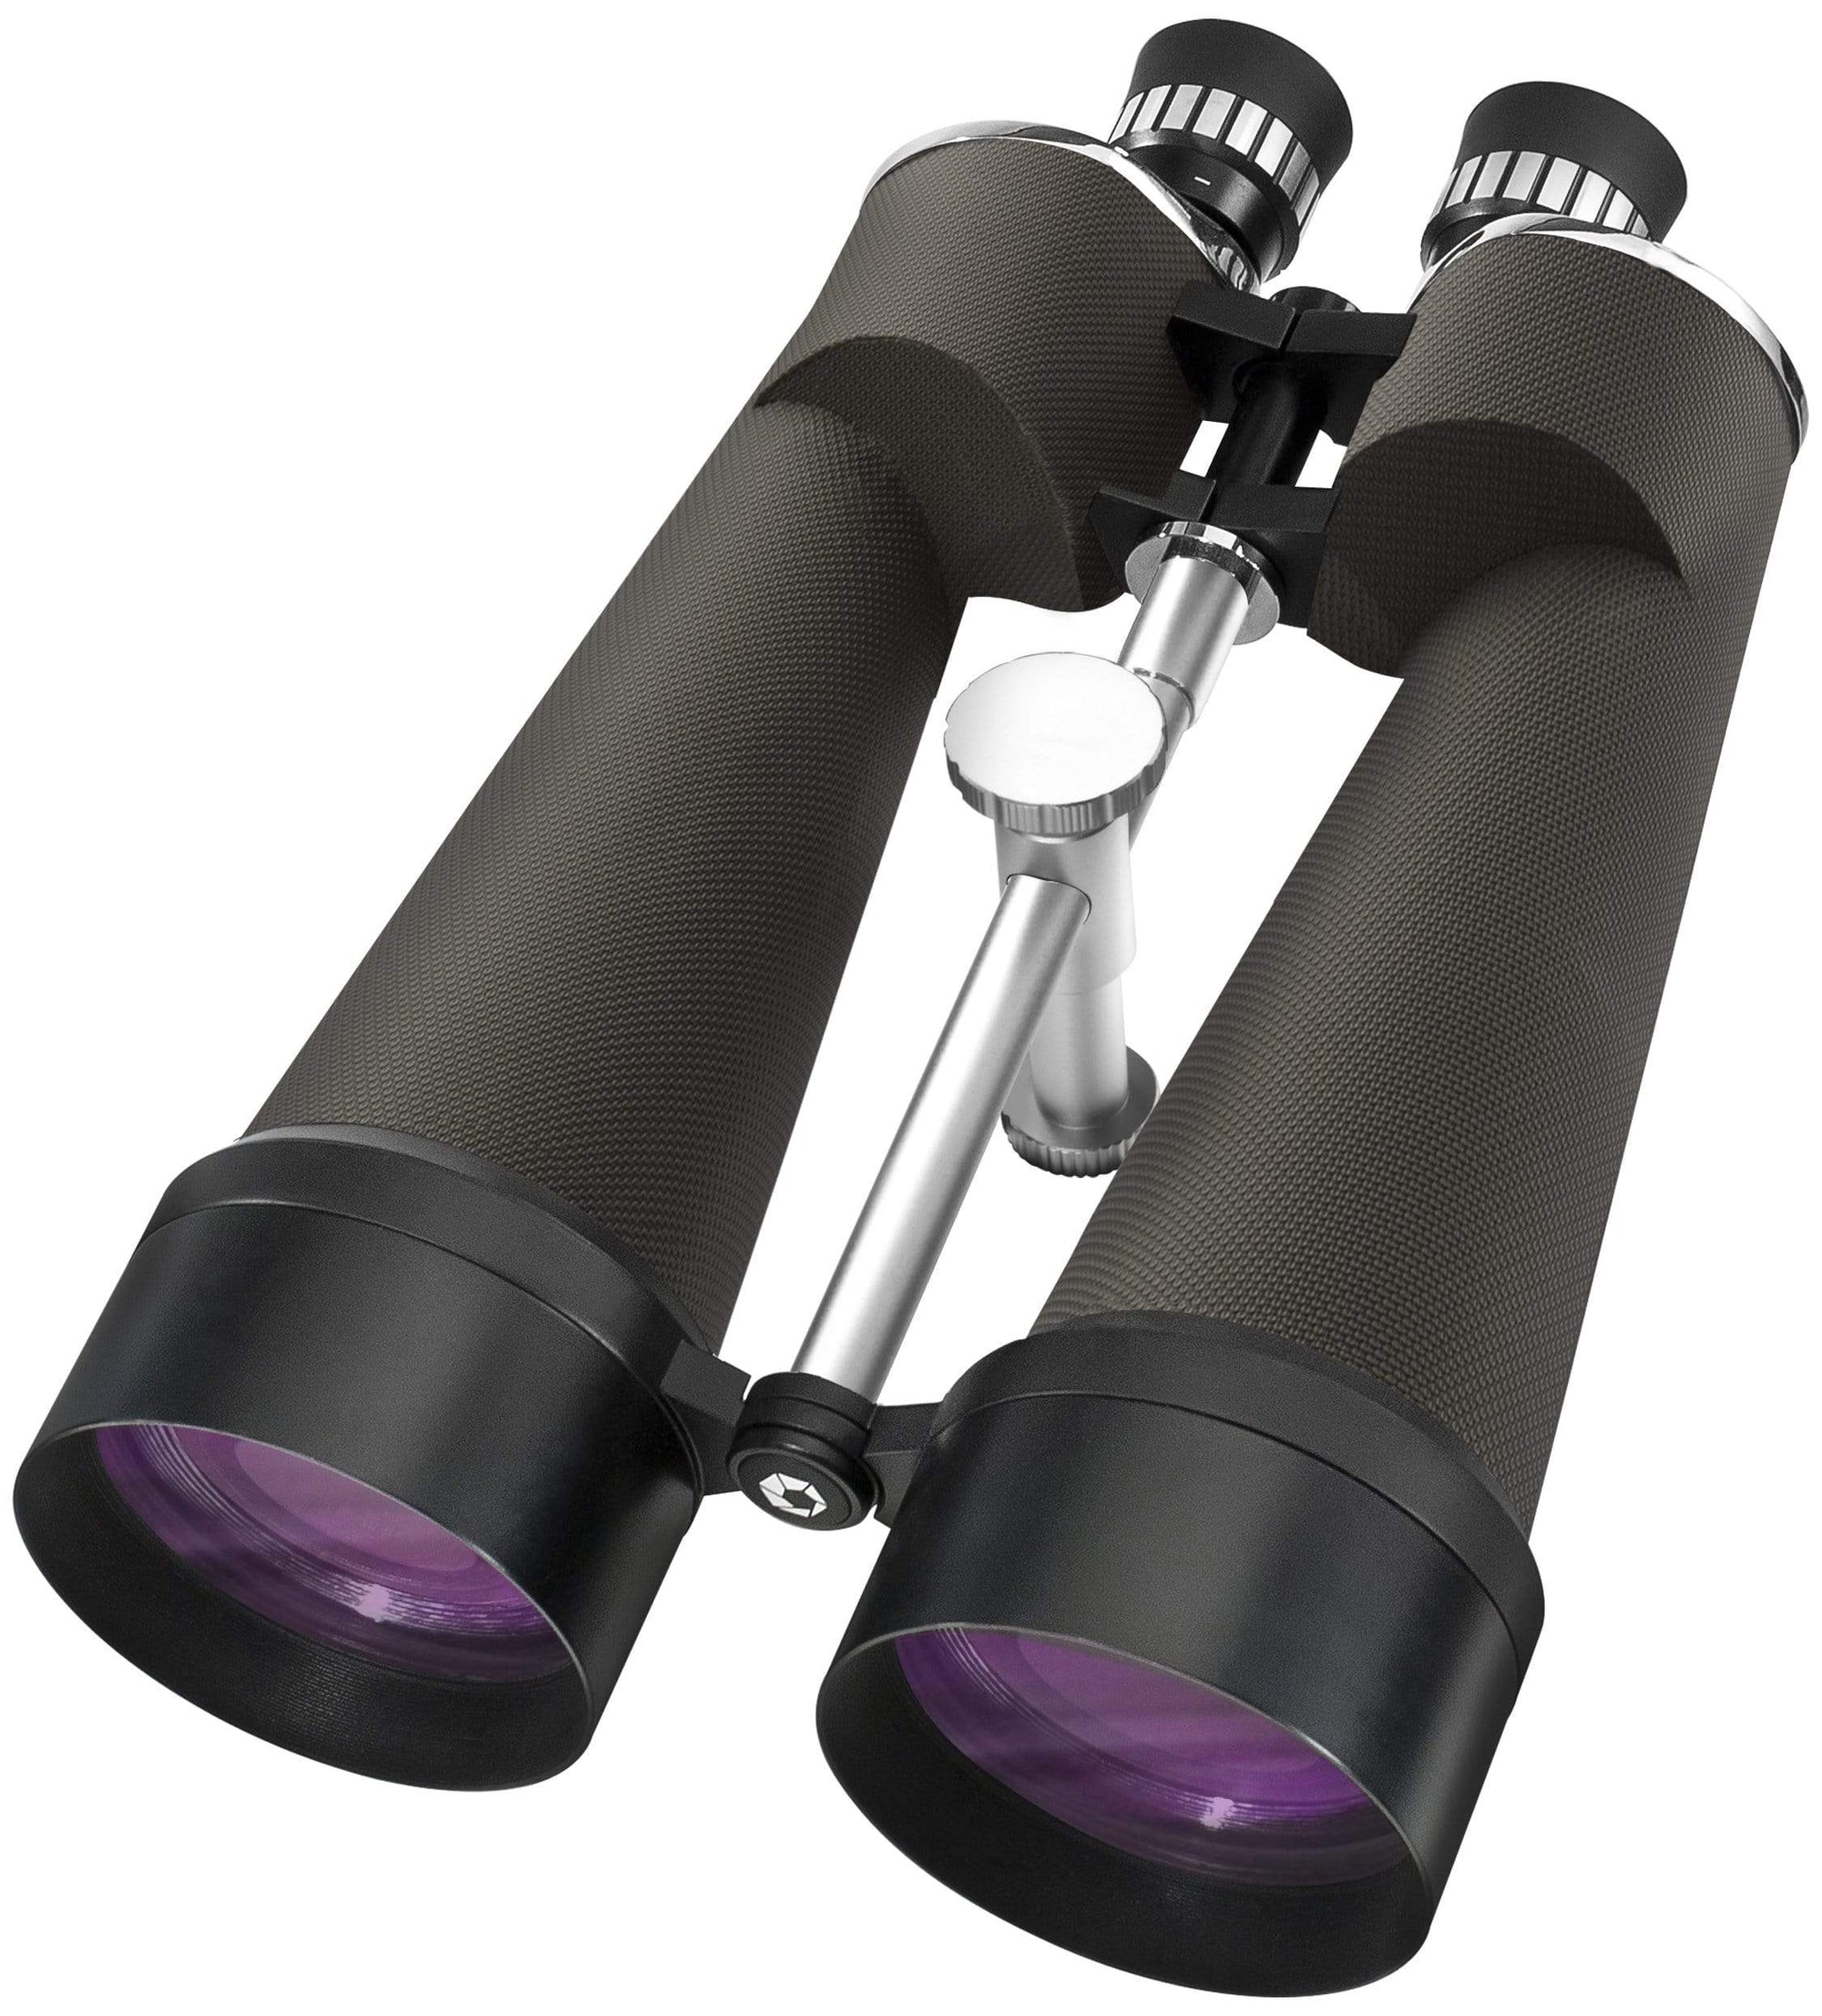 Barska 25 x 100mm WP Cosmos Astronomical Binoculars Armadillo Safe and Vault